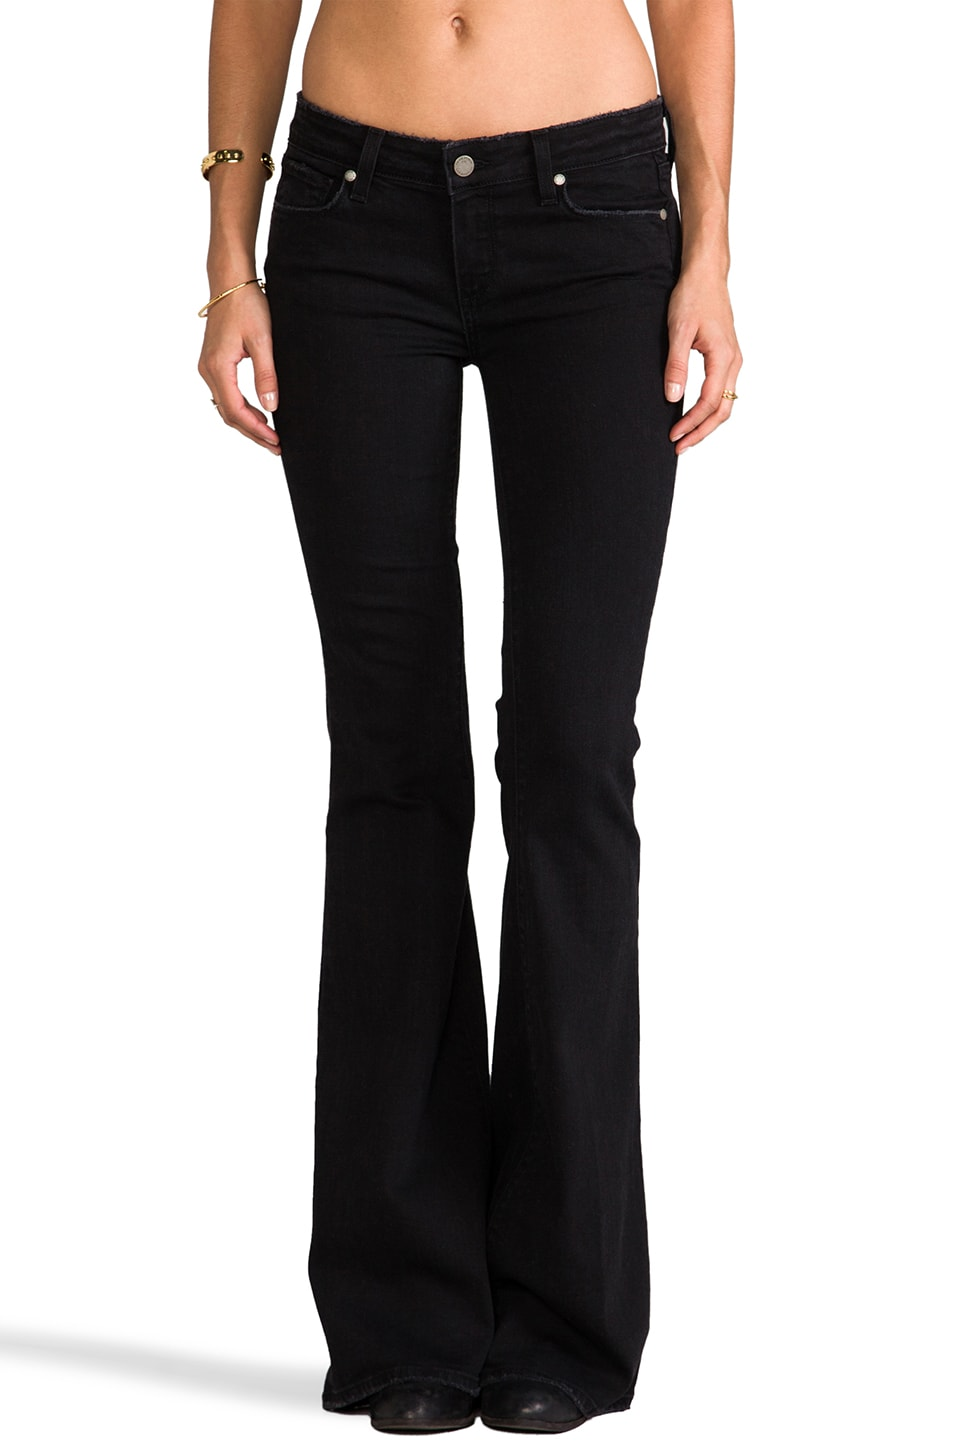 Paige Denim Fiona Flare in Vintage Black